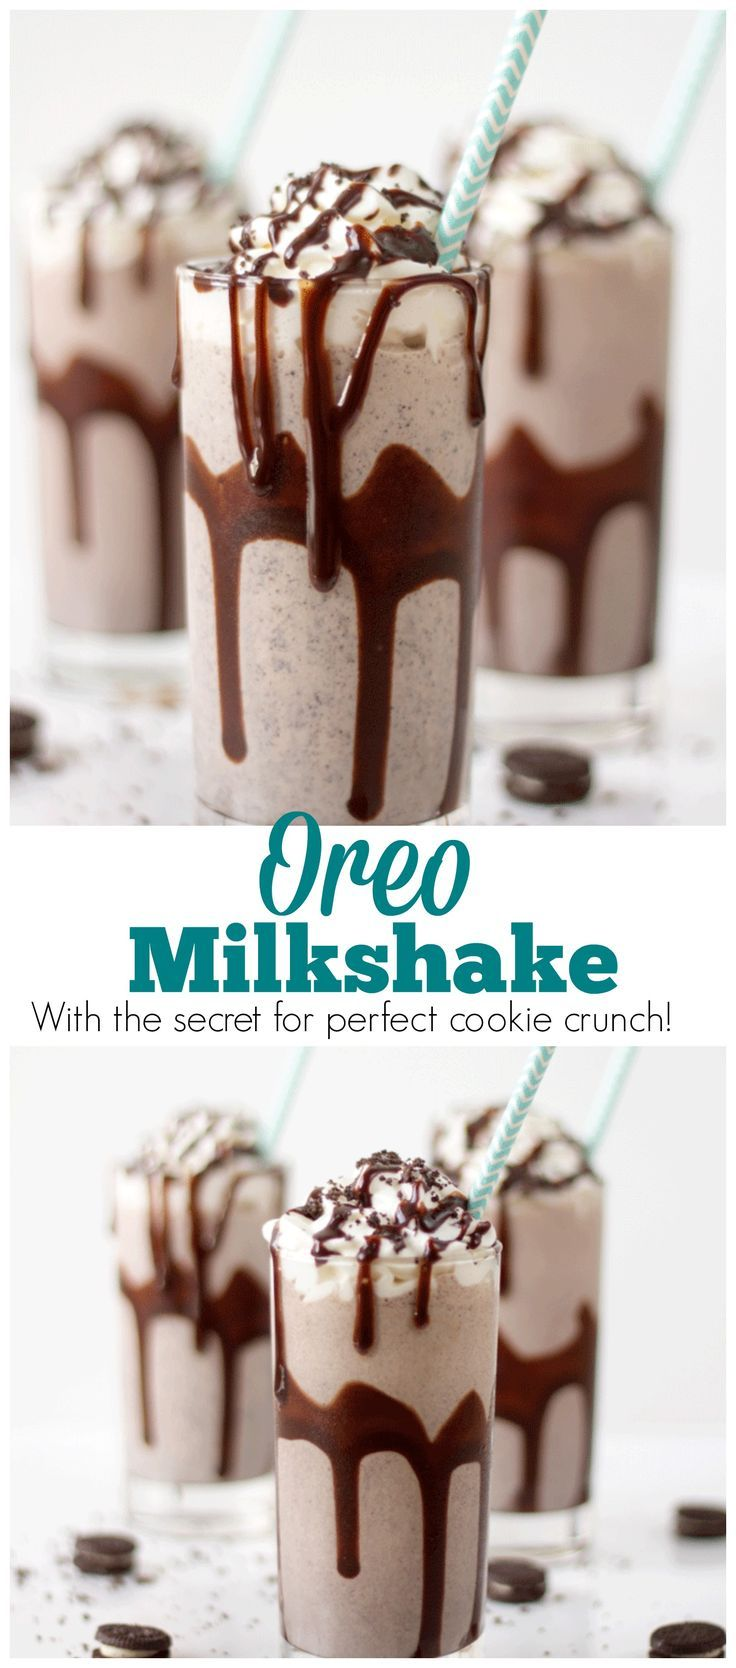 There is no need to get in your car and drive to an ice cream shop to get an Ore…